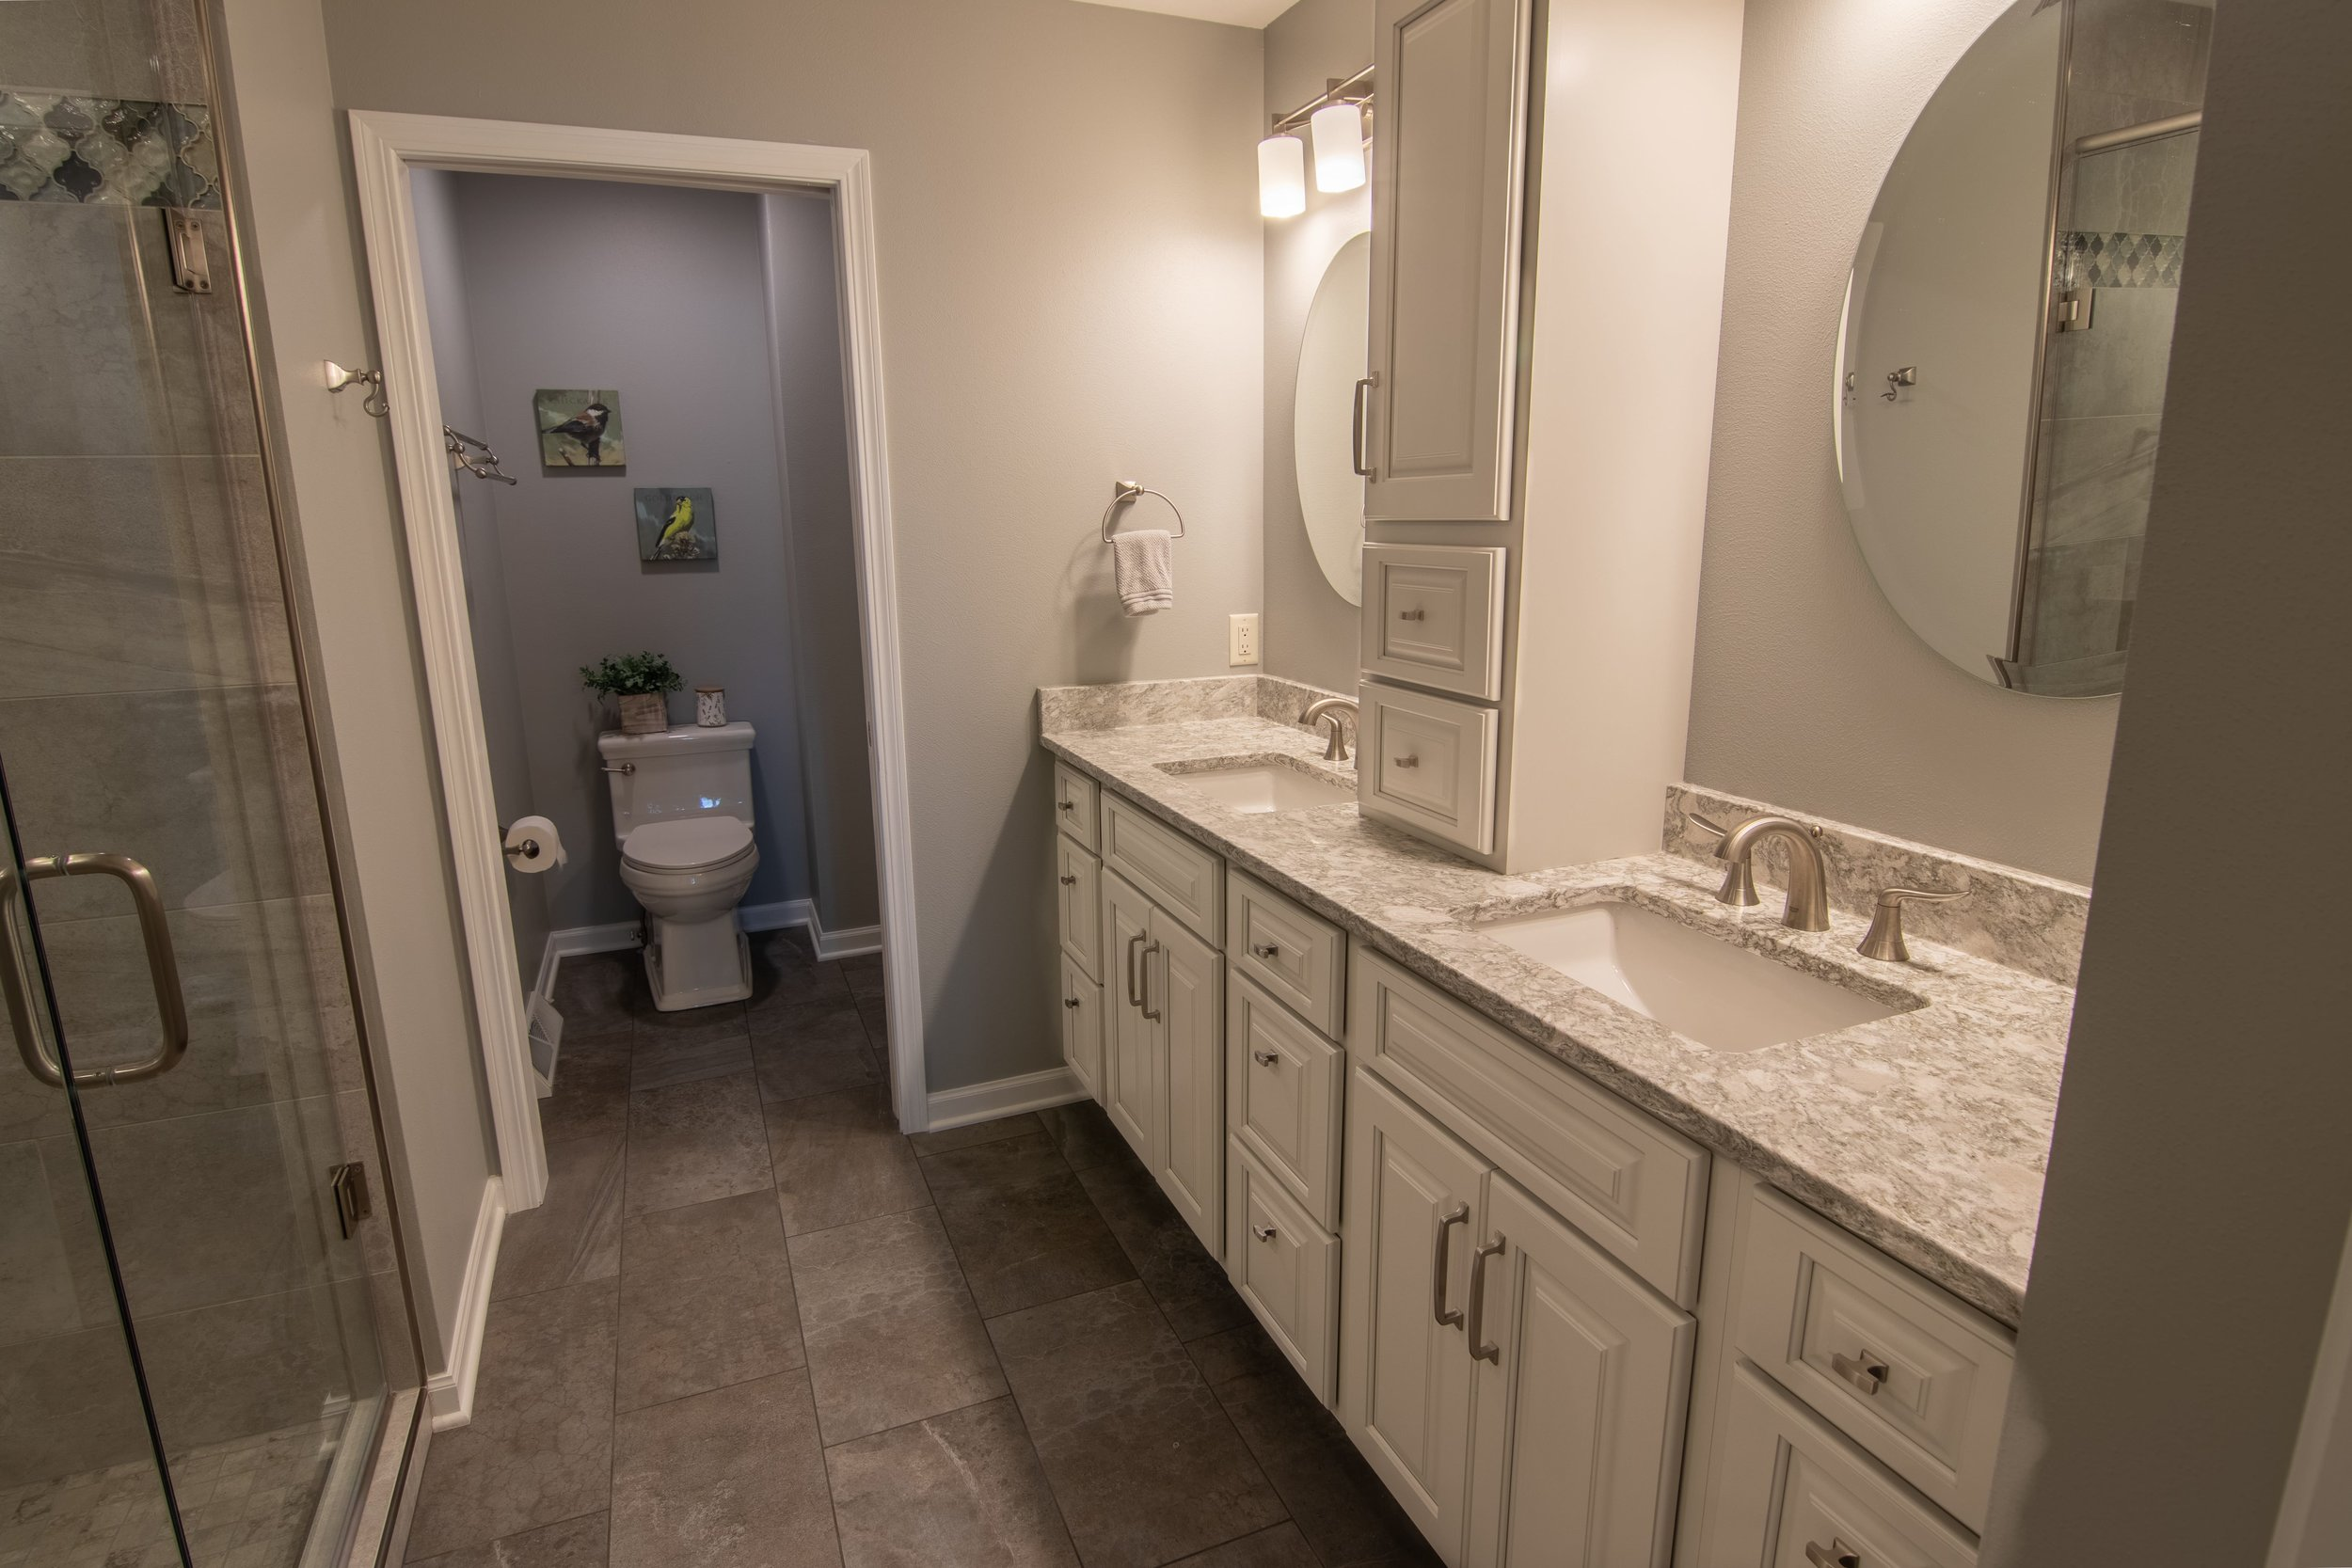 bathroom-remodel-renovate-monona-wi-9.jpg